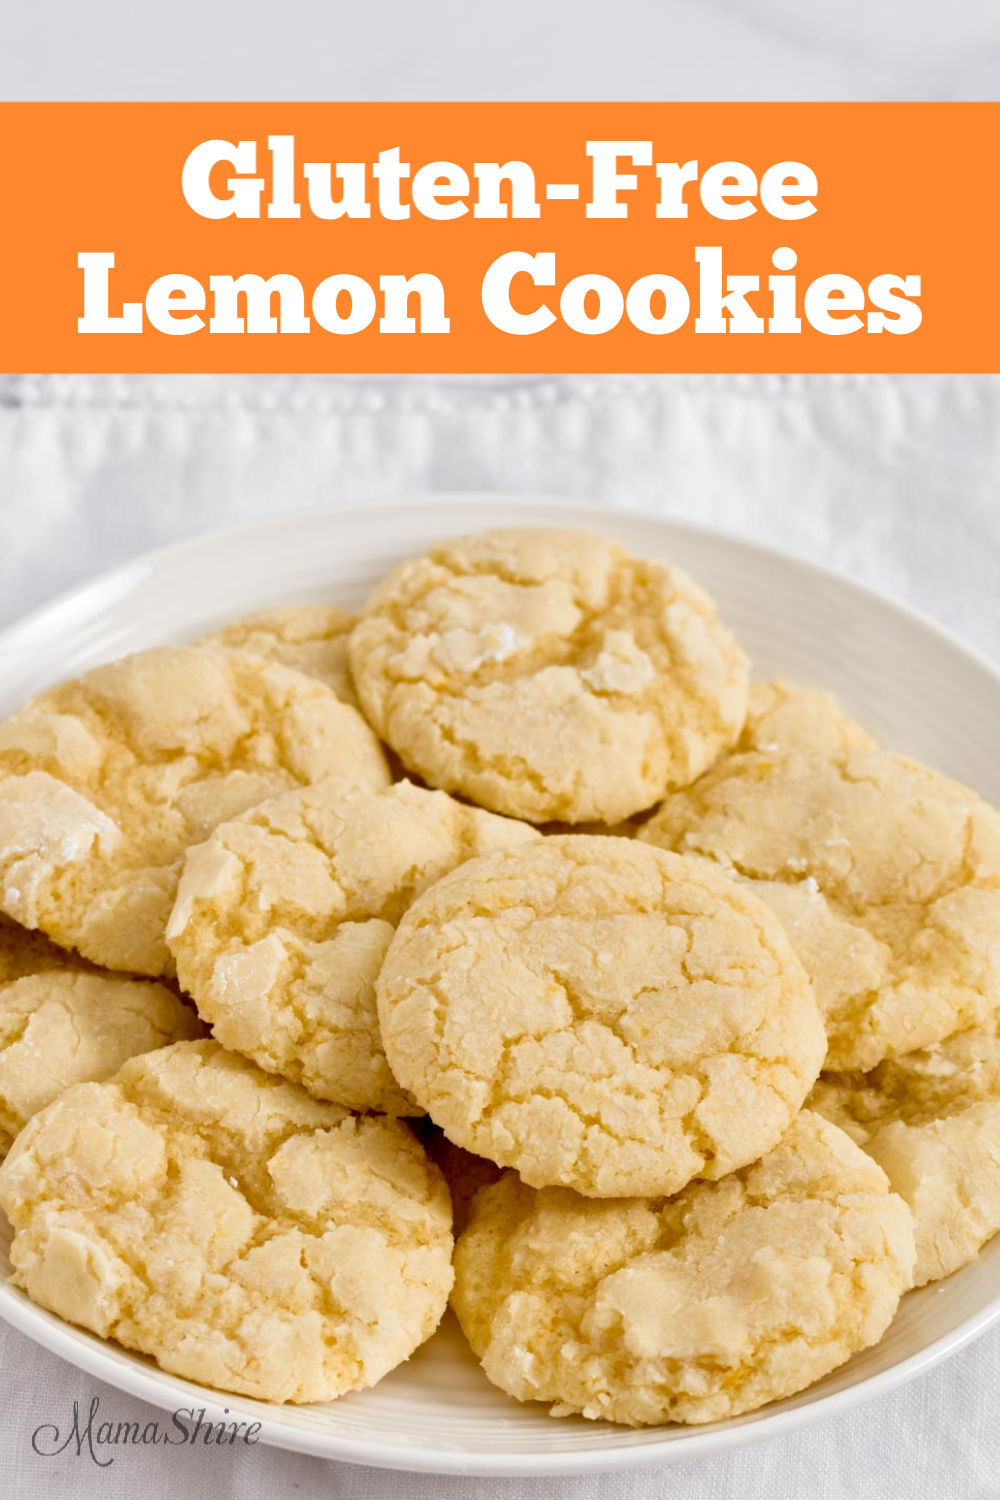 Easy to make gluten-free cookies.